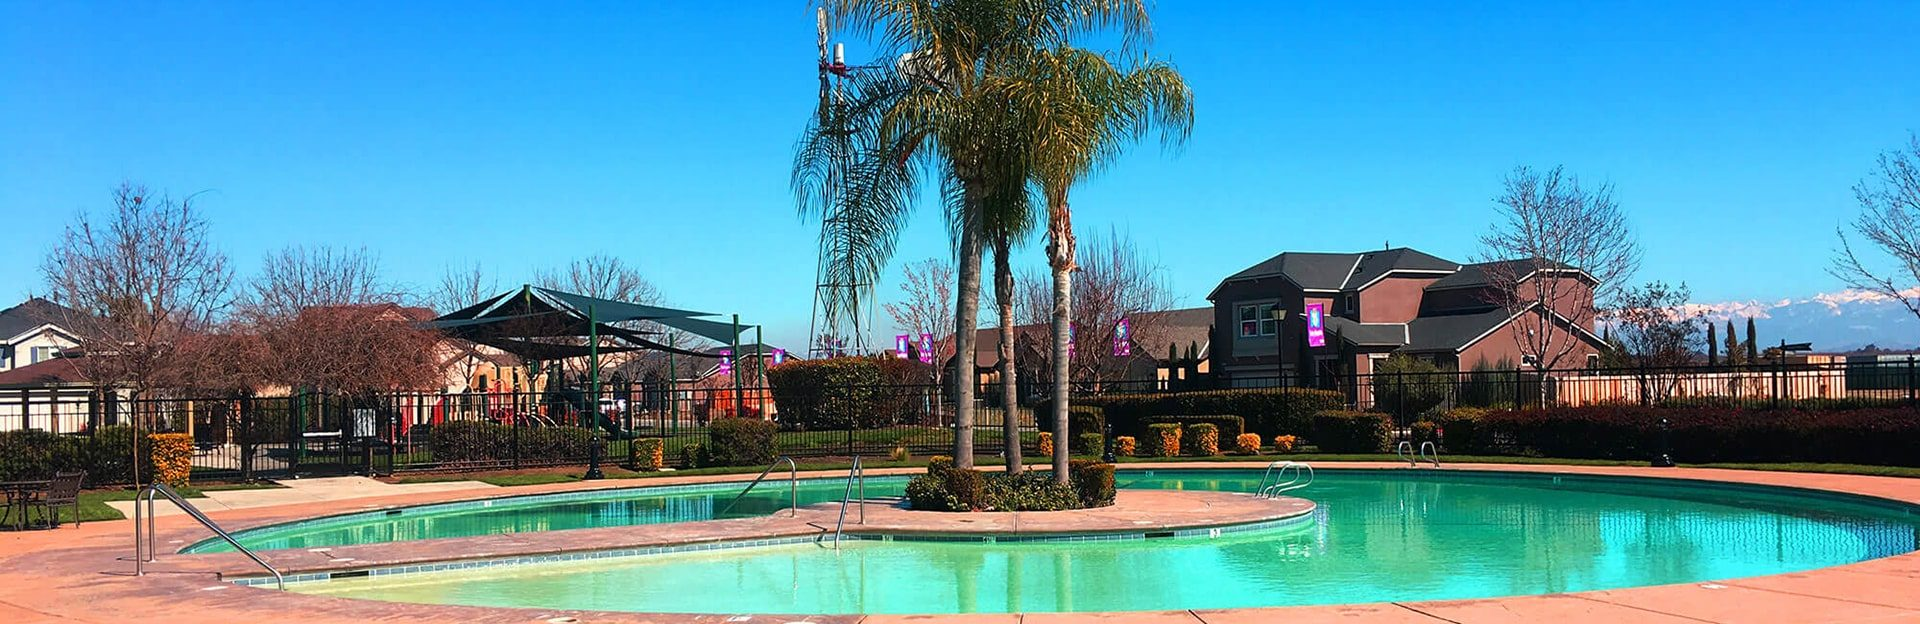 A pool with a palm tree in the middle of the town houses; 房地产行业的精英